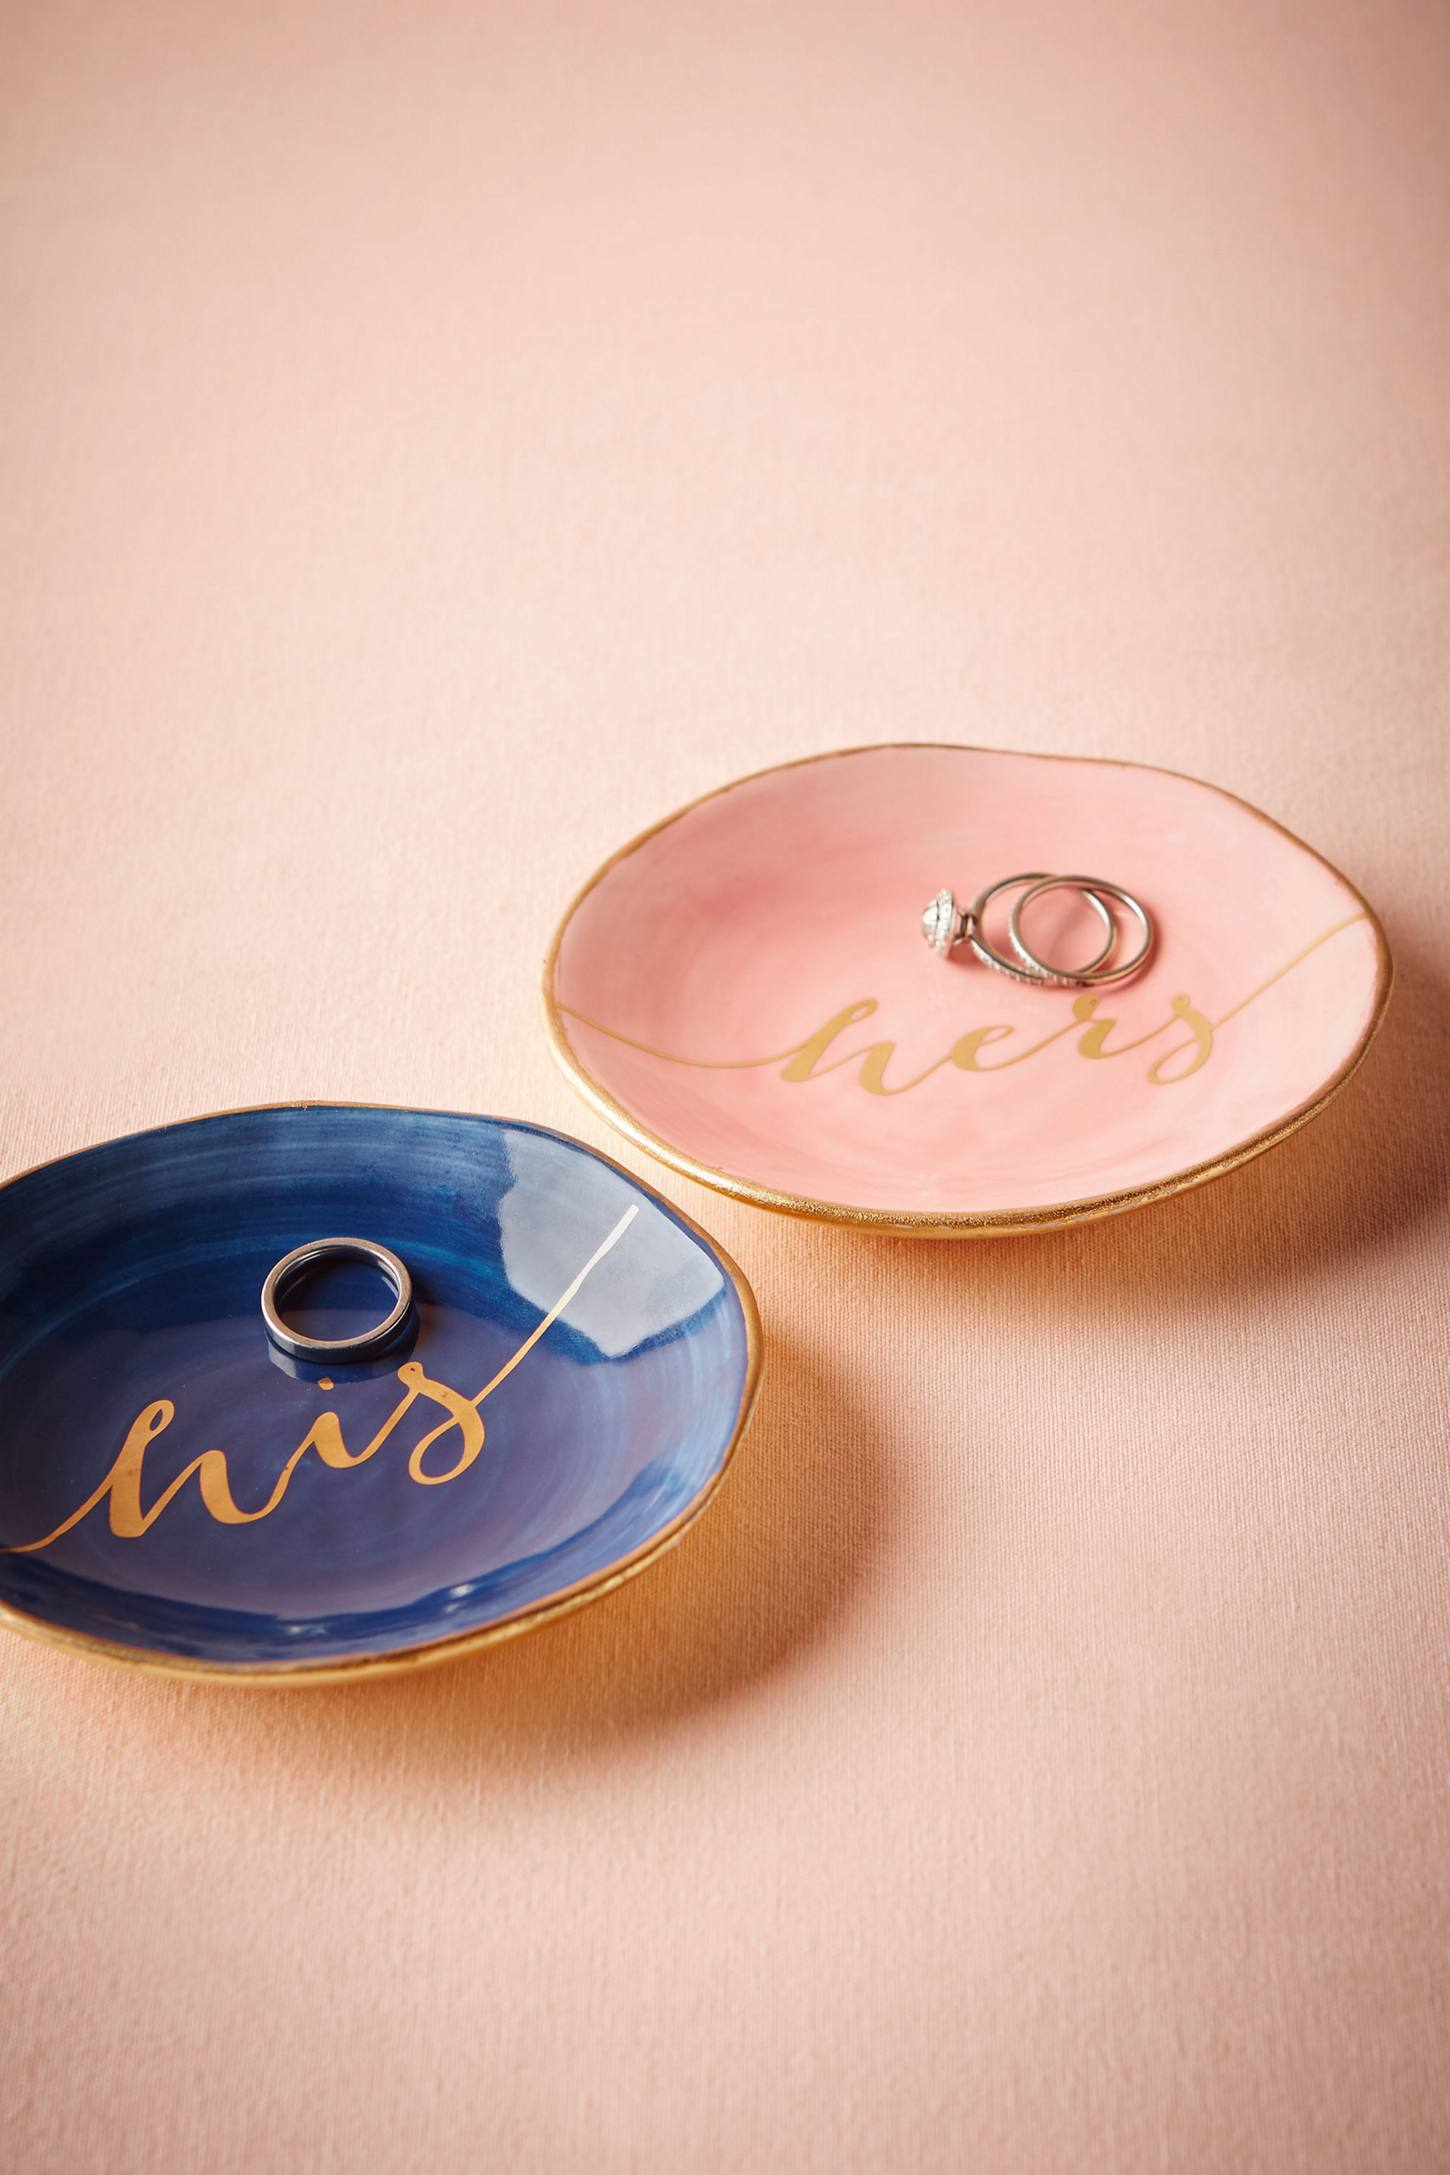 Slide View: 1: His & Hers Ring Dishes